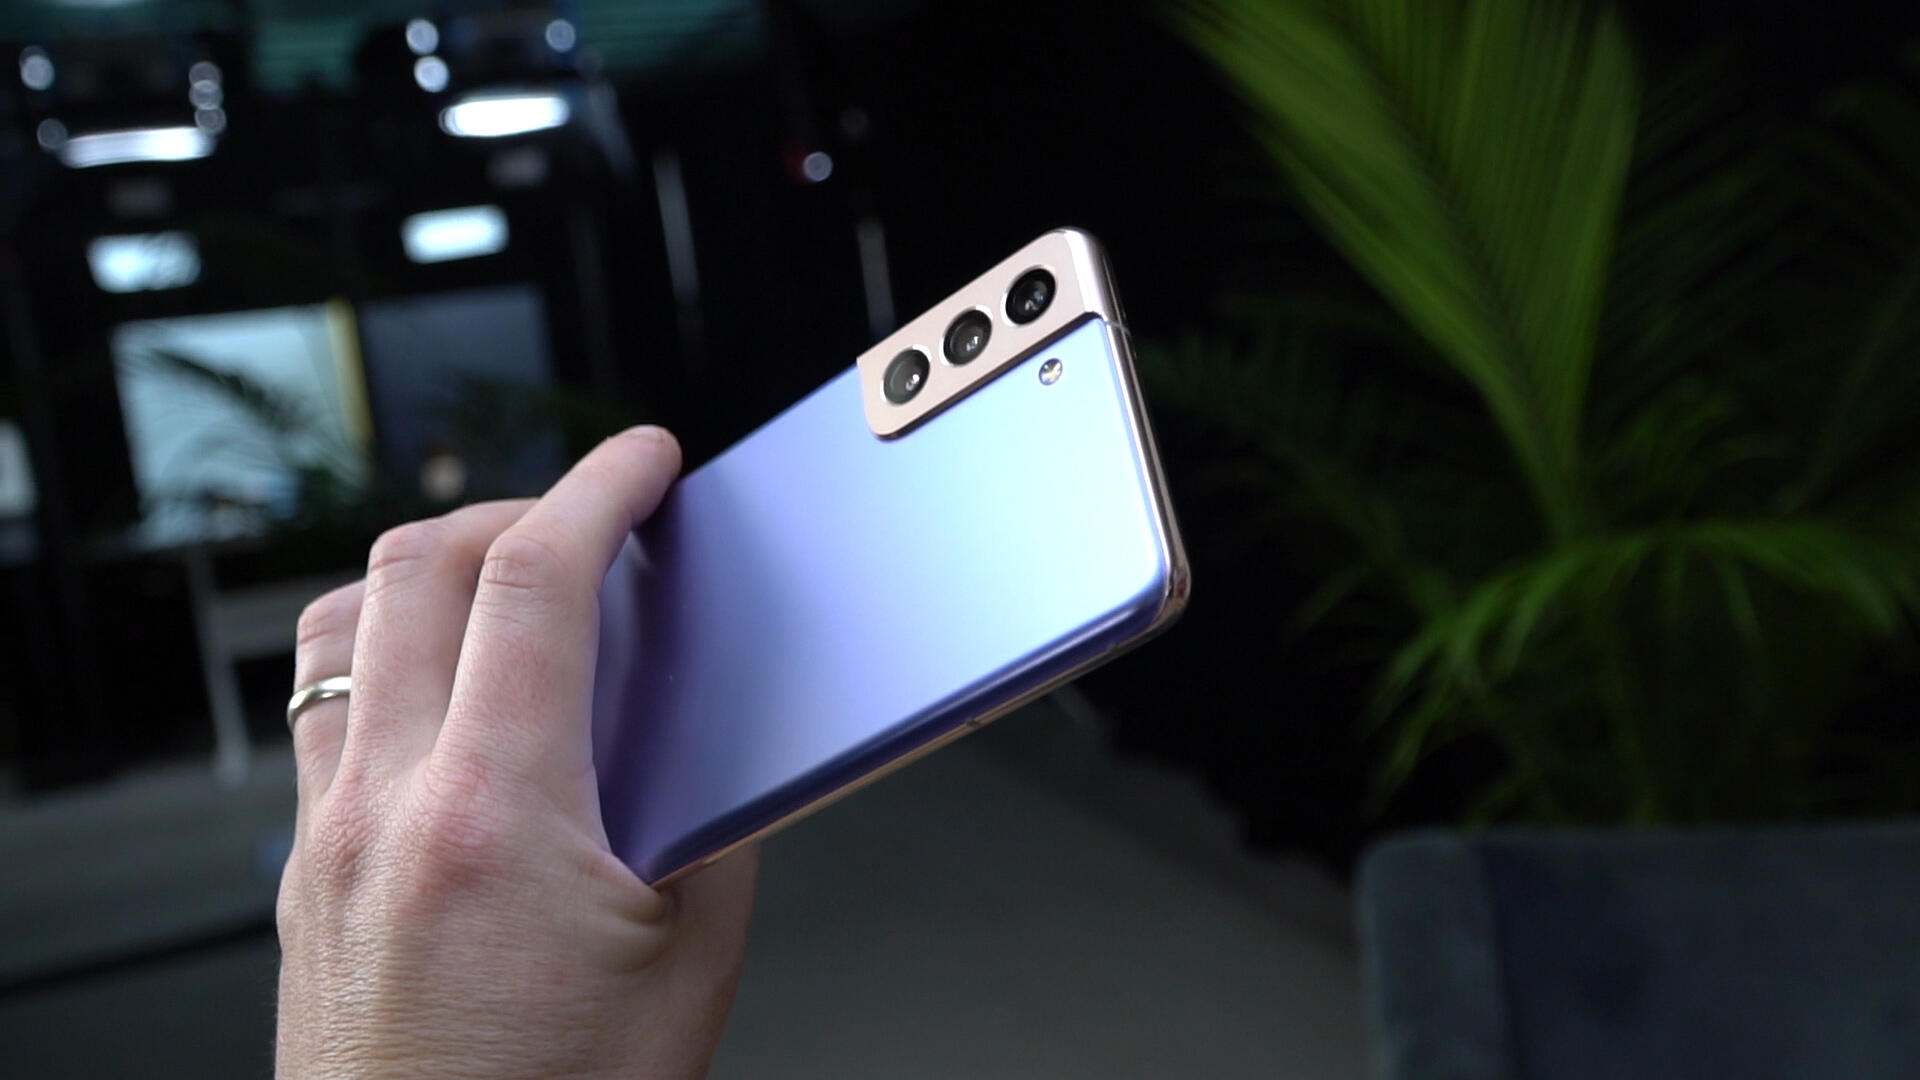 Video: Our first look at the new Galaxy S21 and S21 Plus